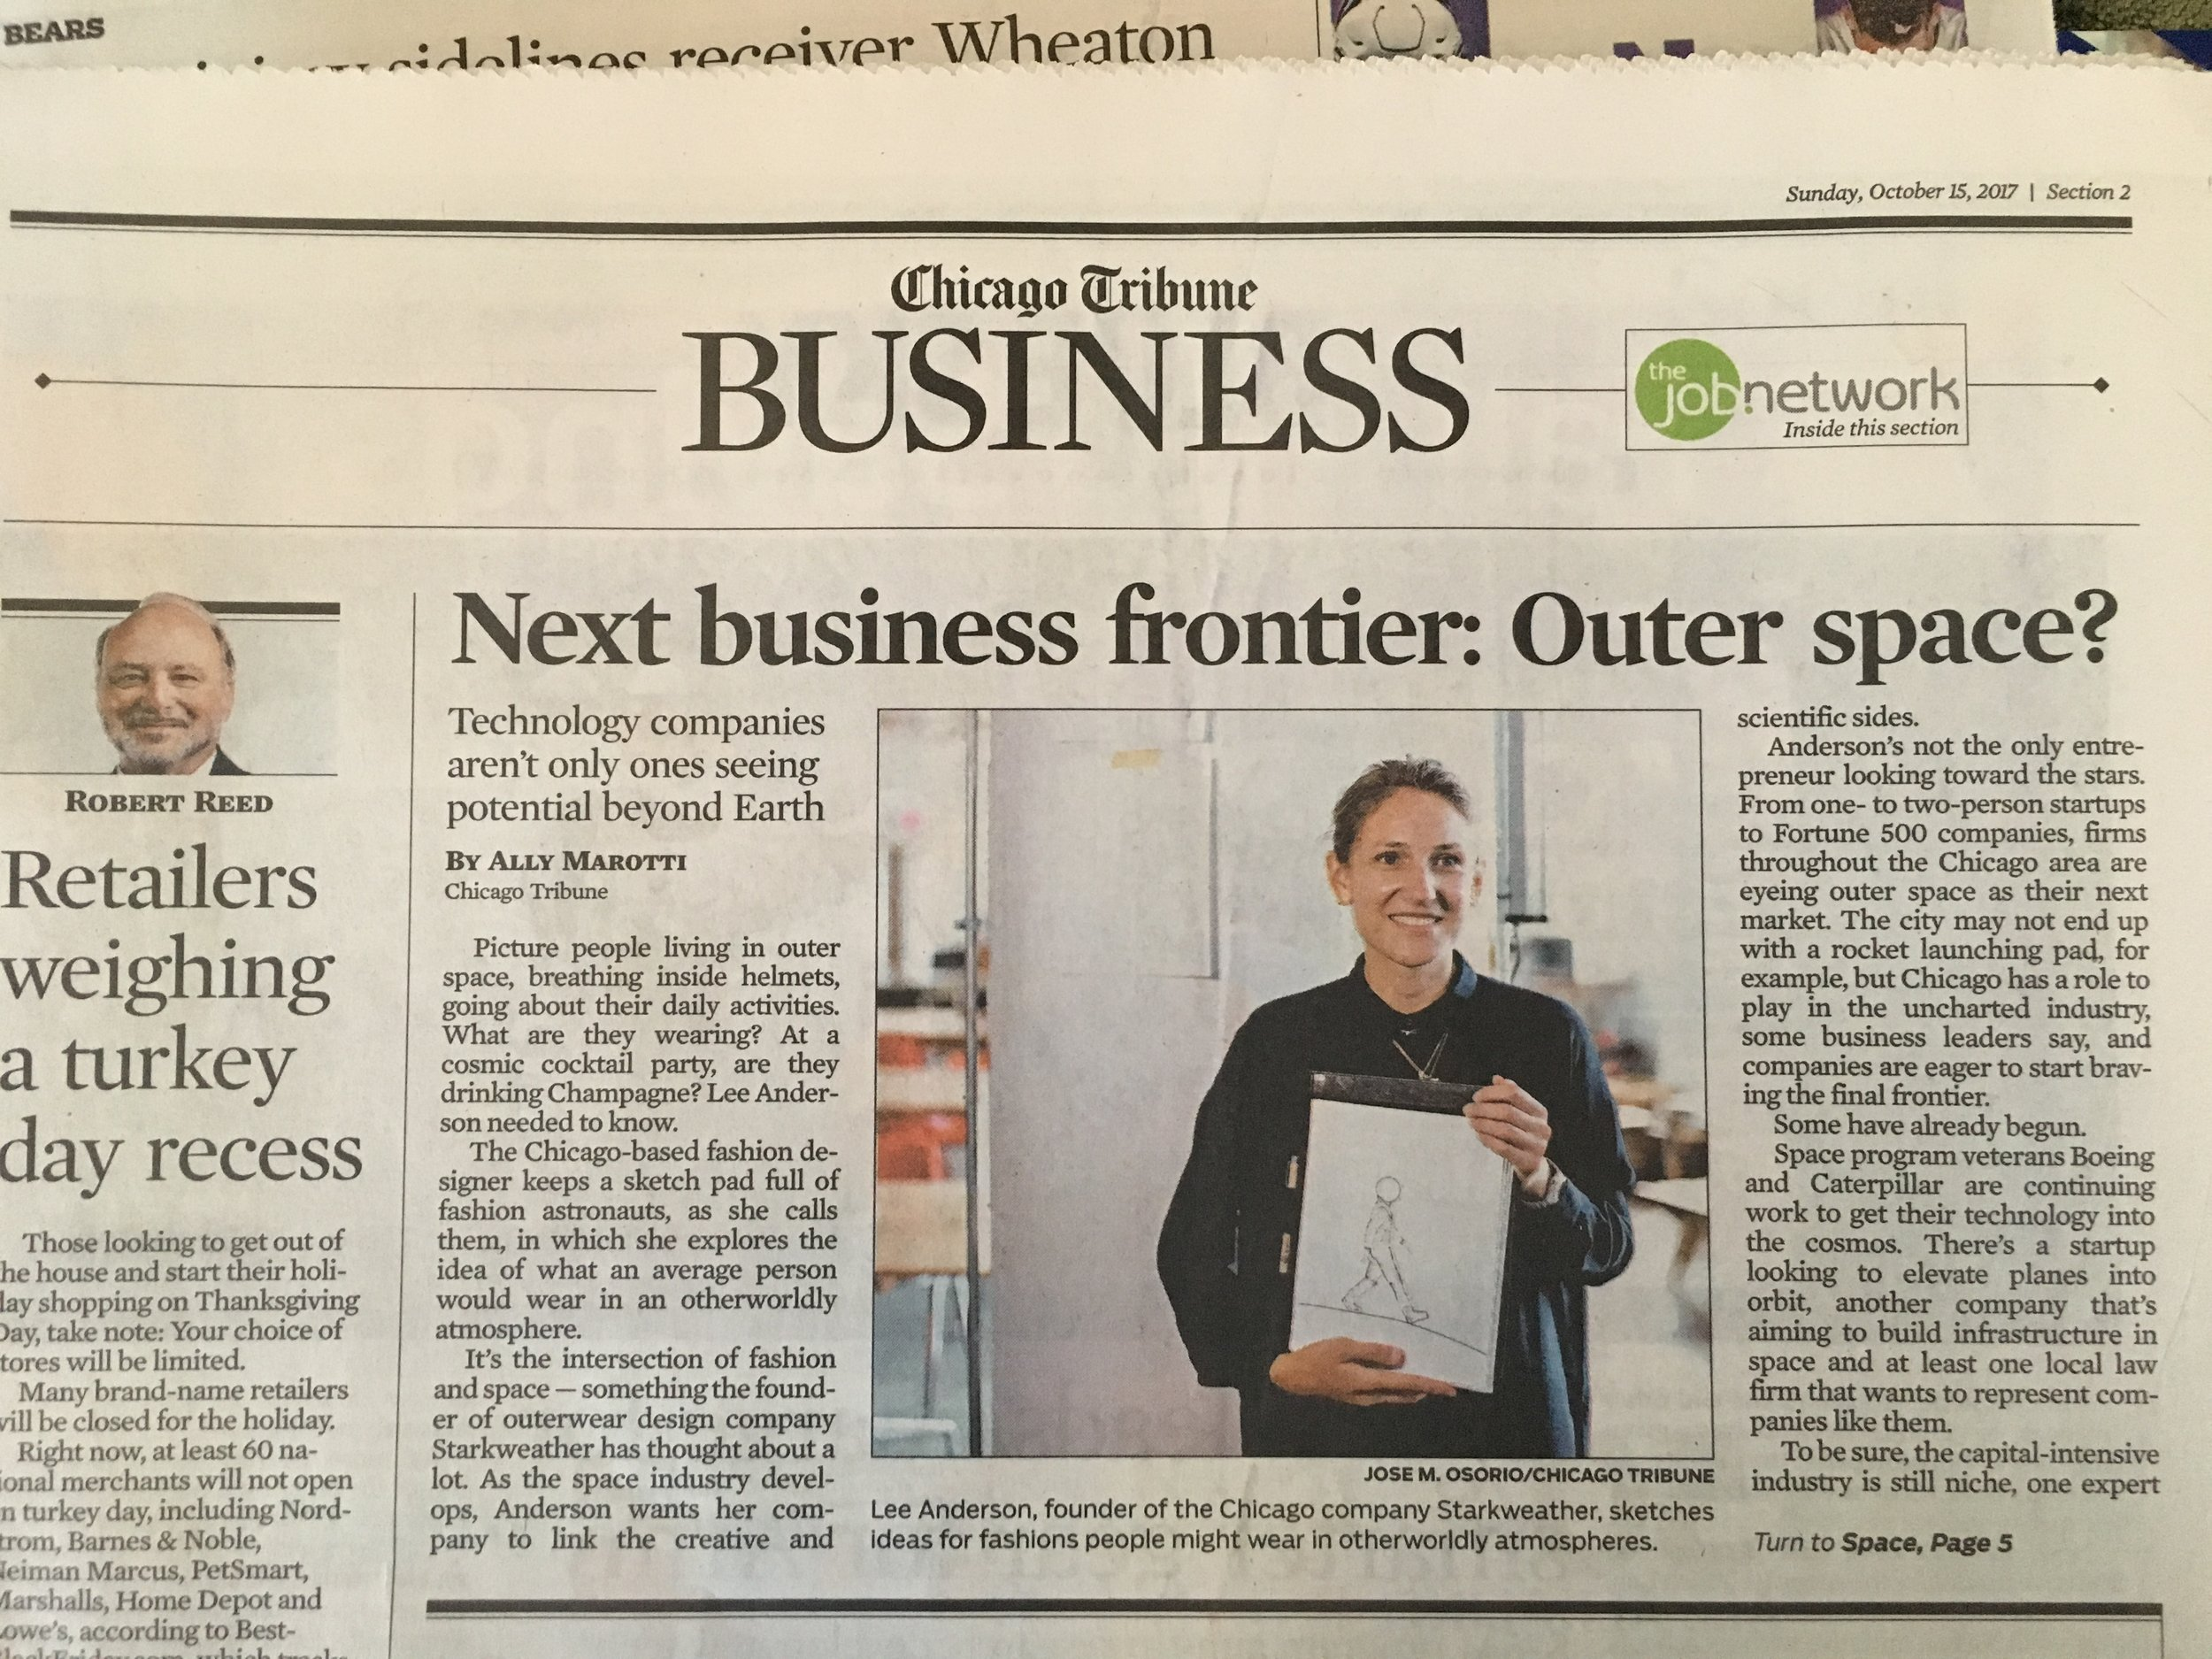 Page 1 of the business section on Sunday, October 15